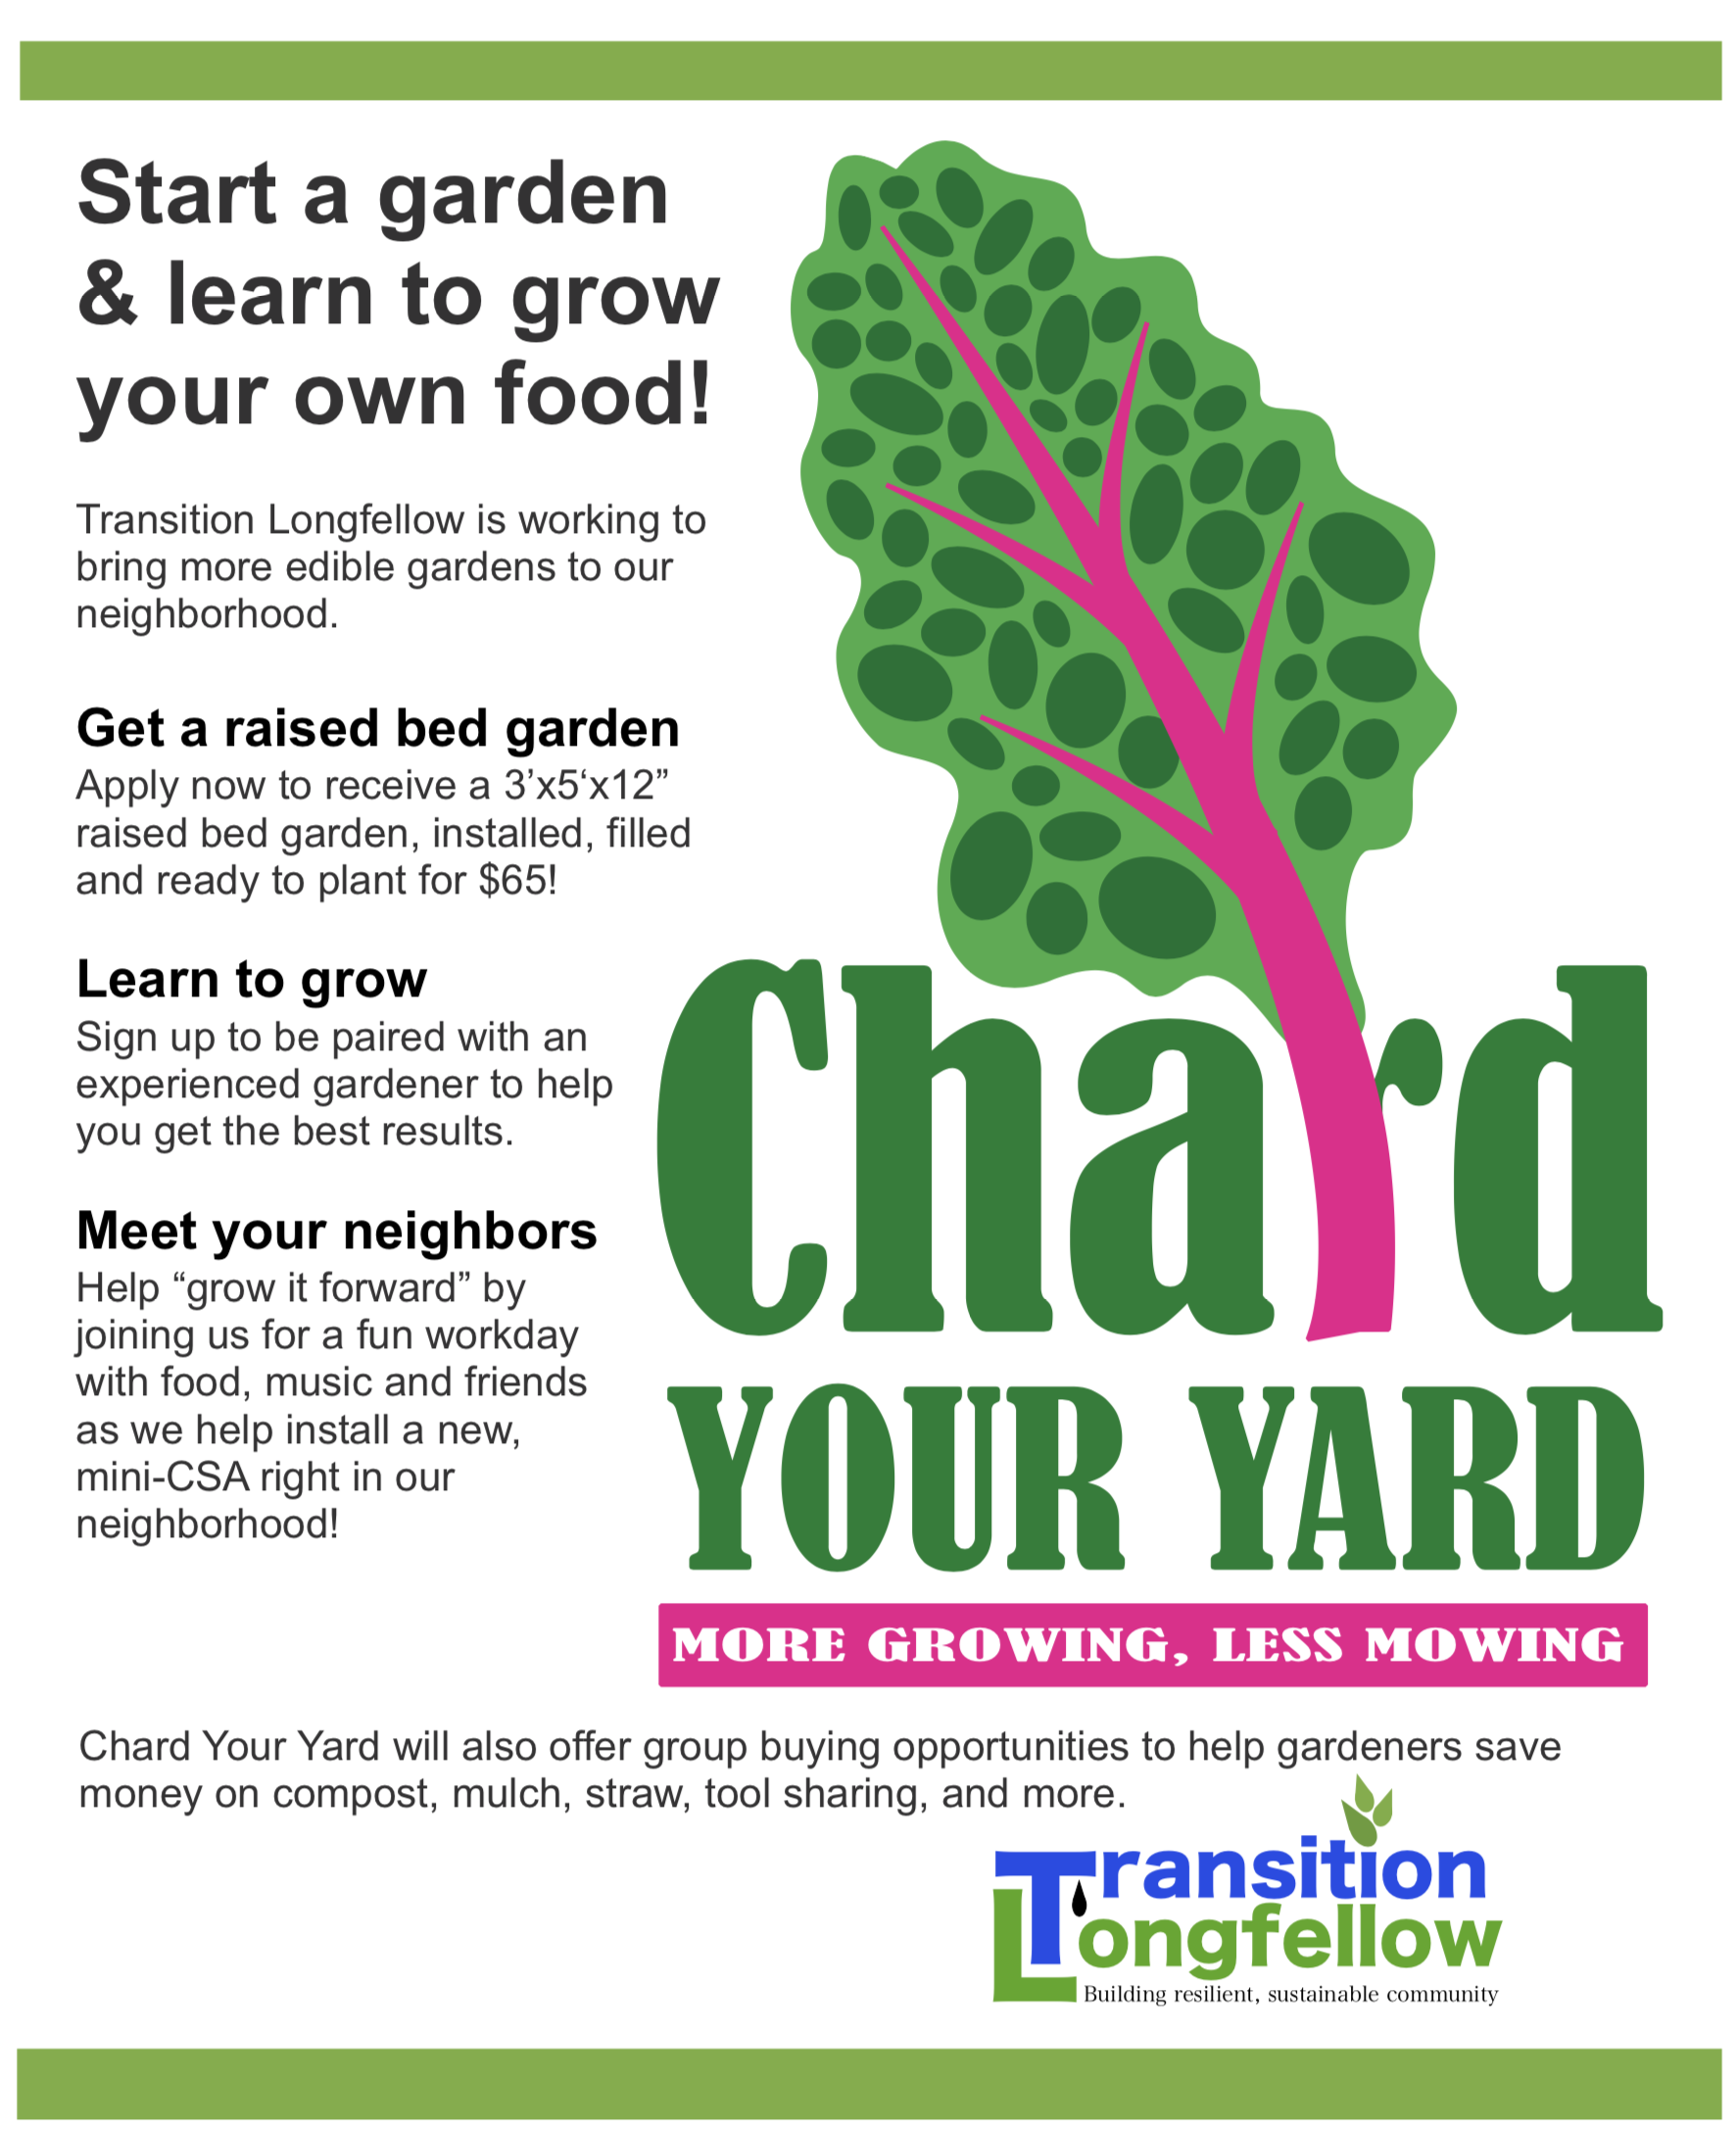 Chard Your Yard Garden Installation